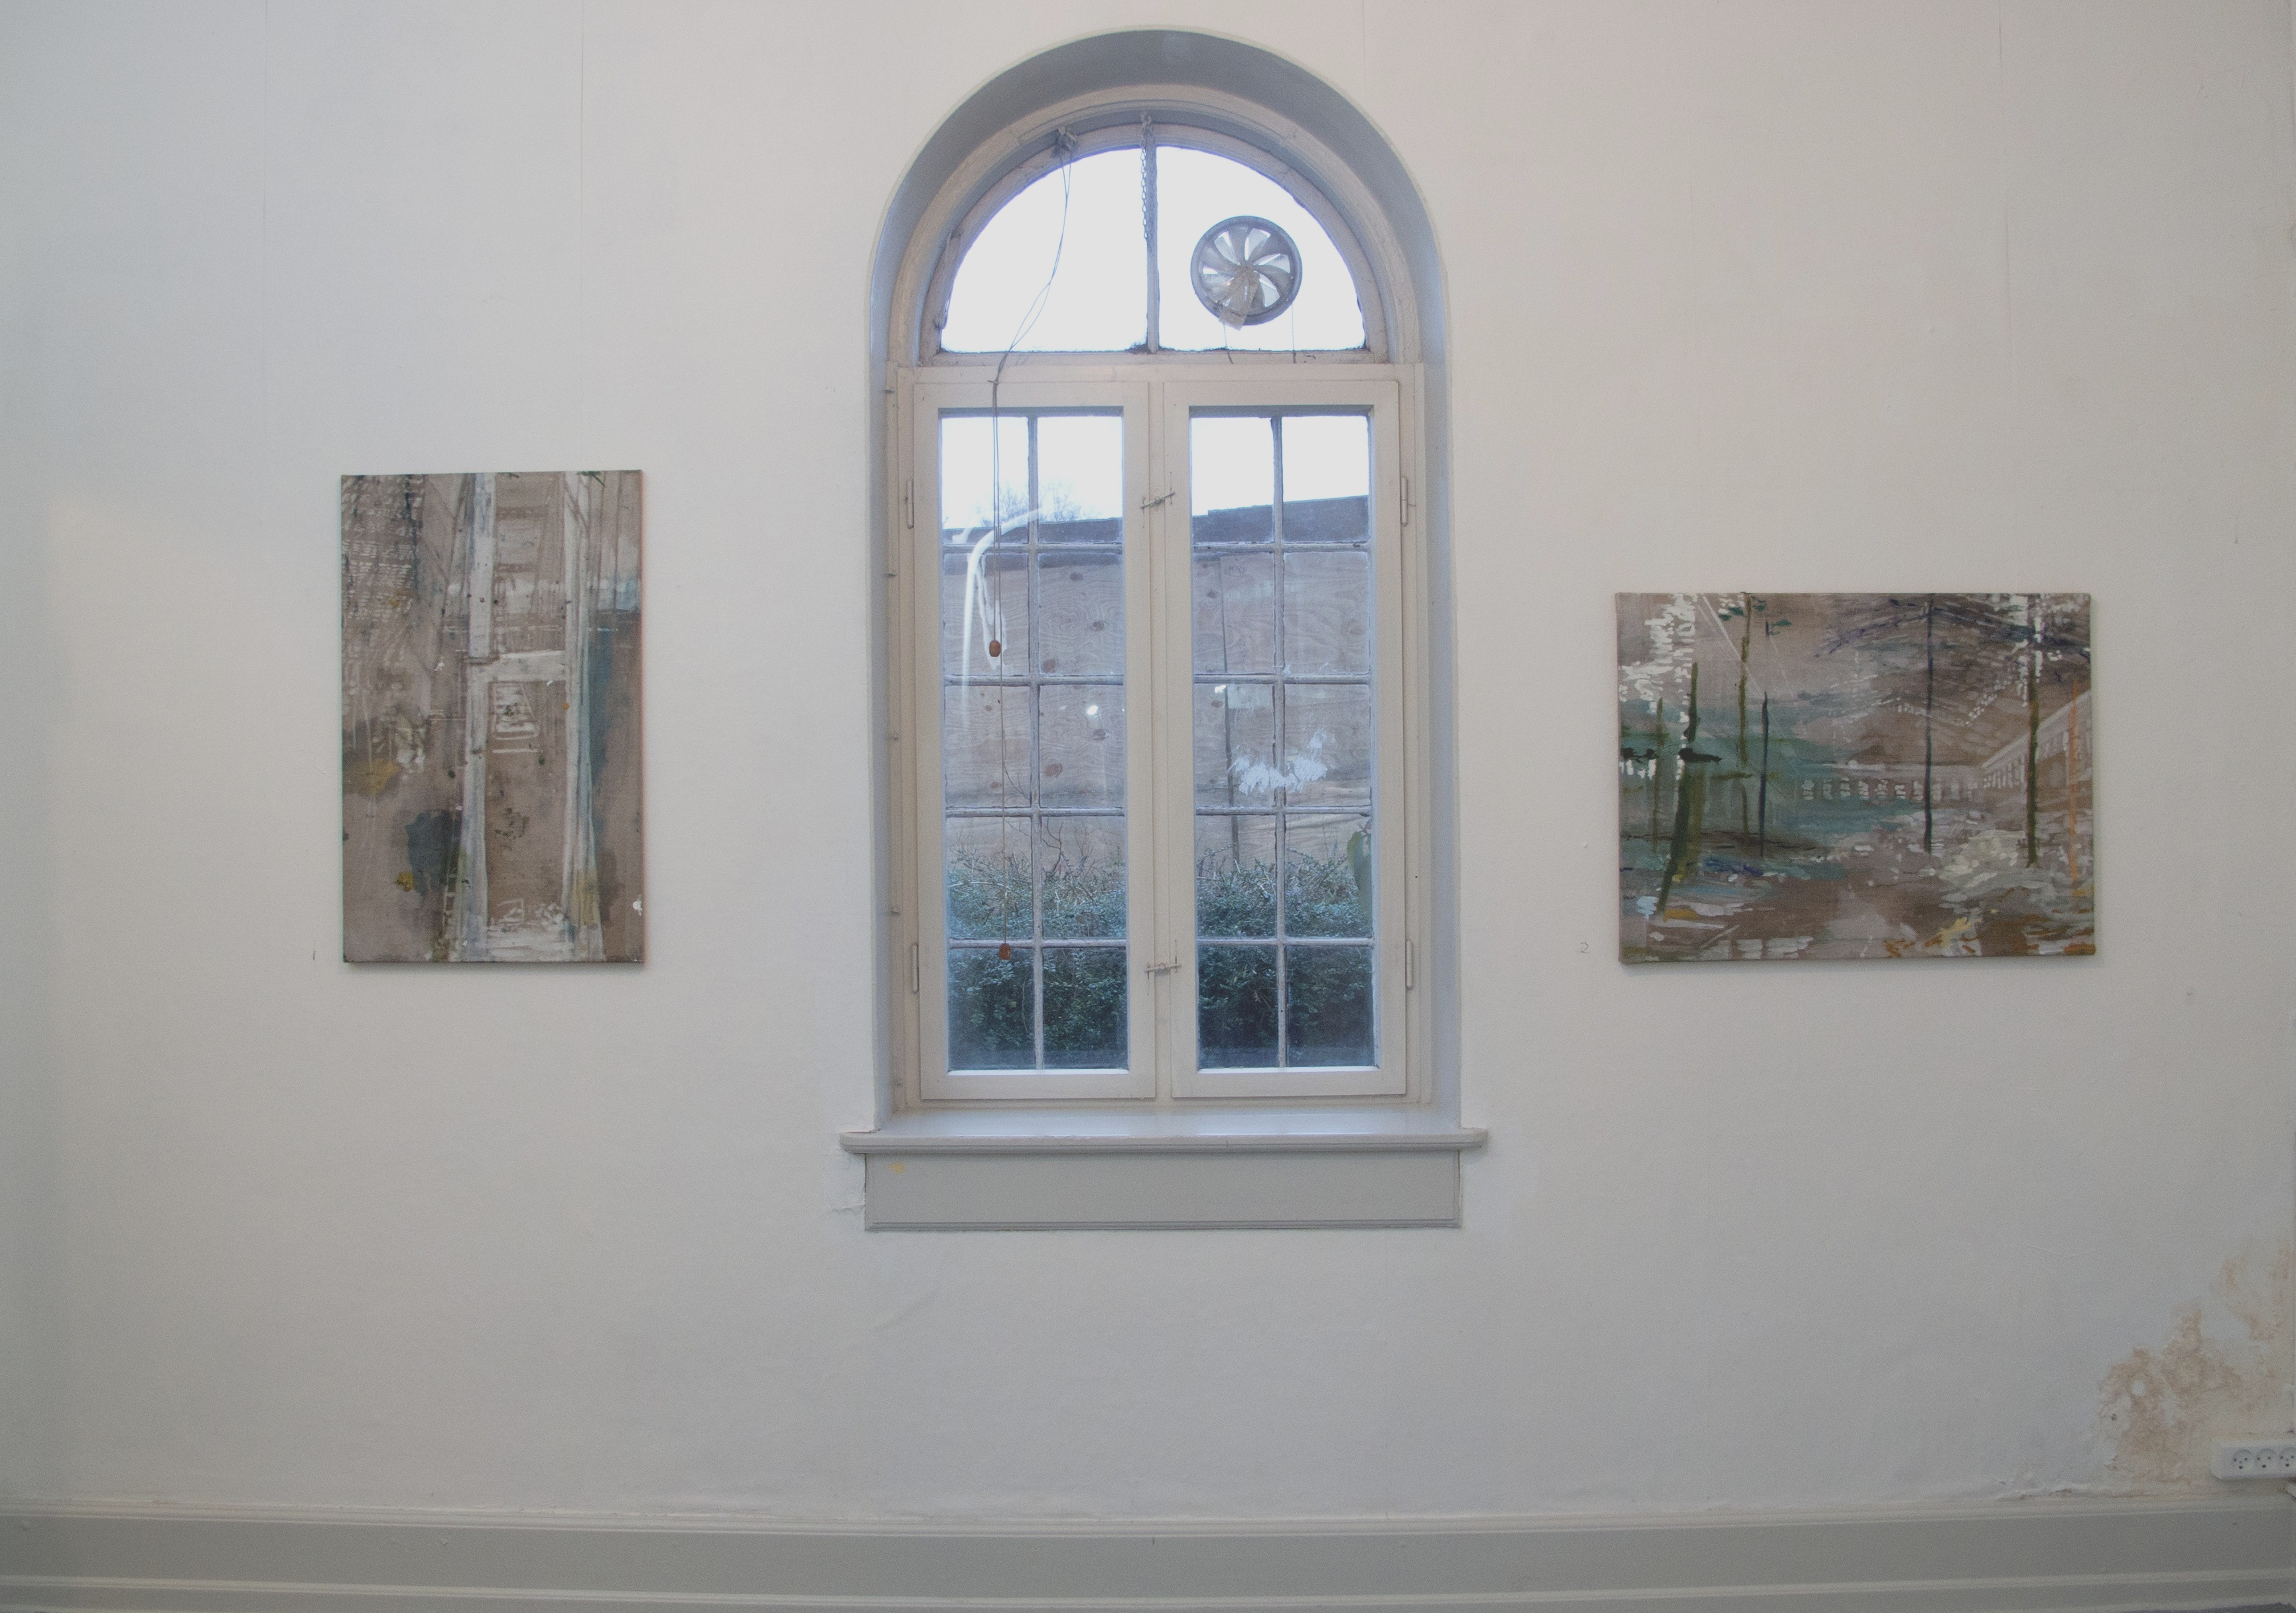 Installation view, Tonenton